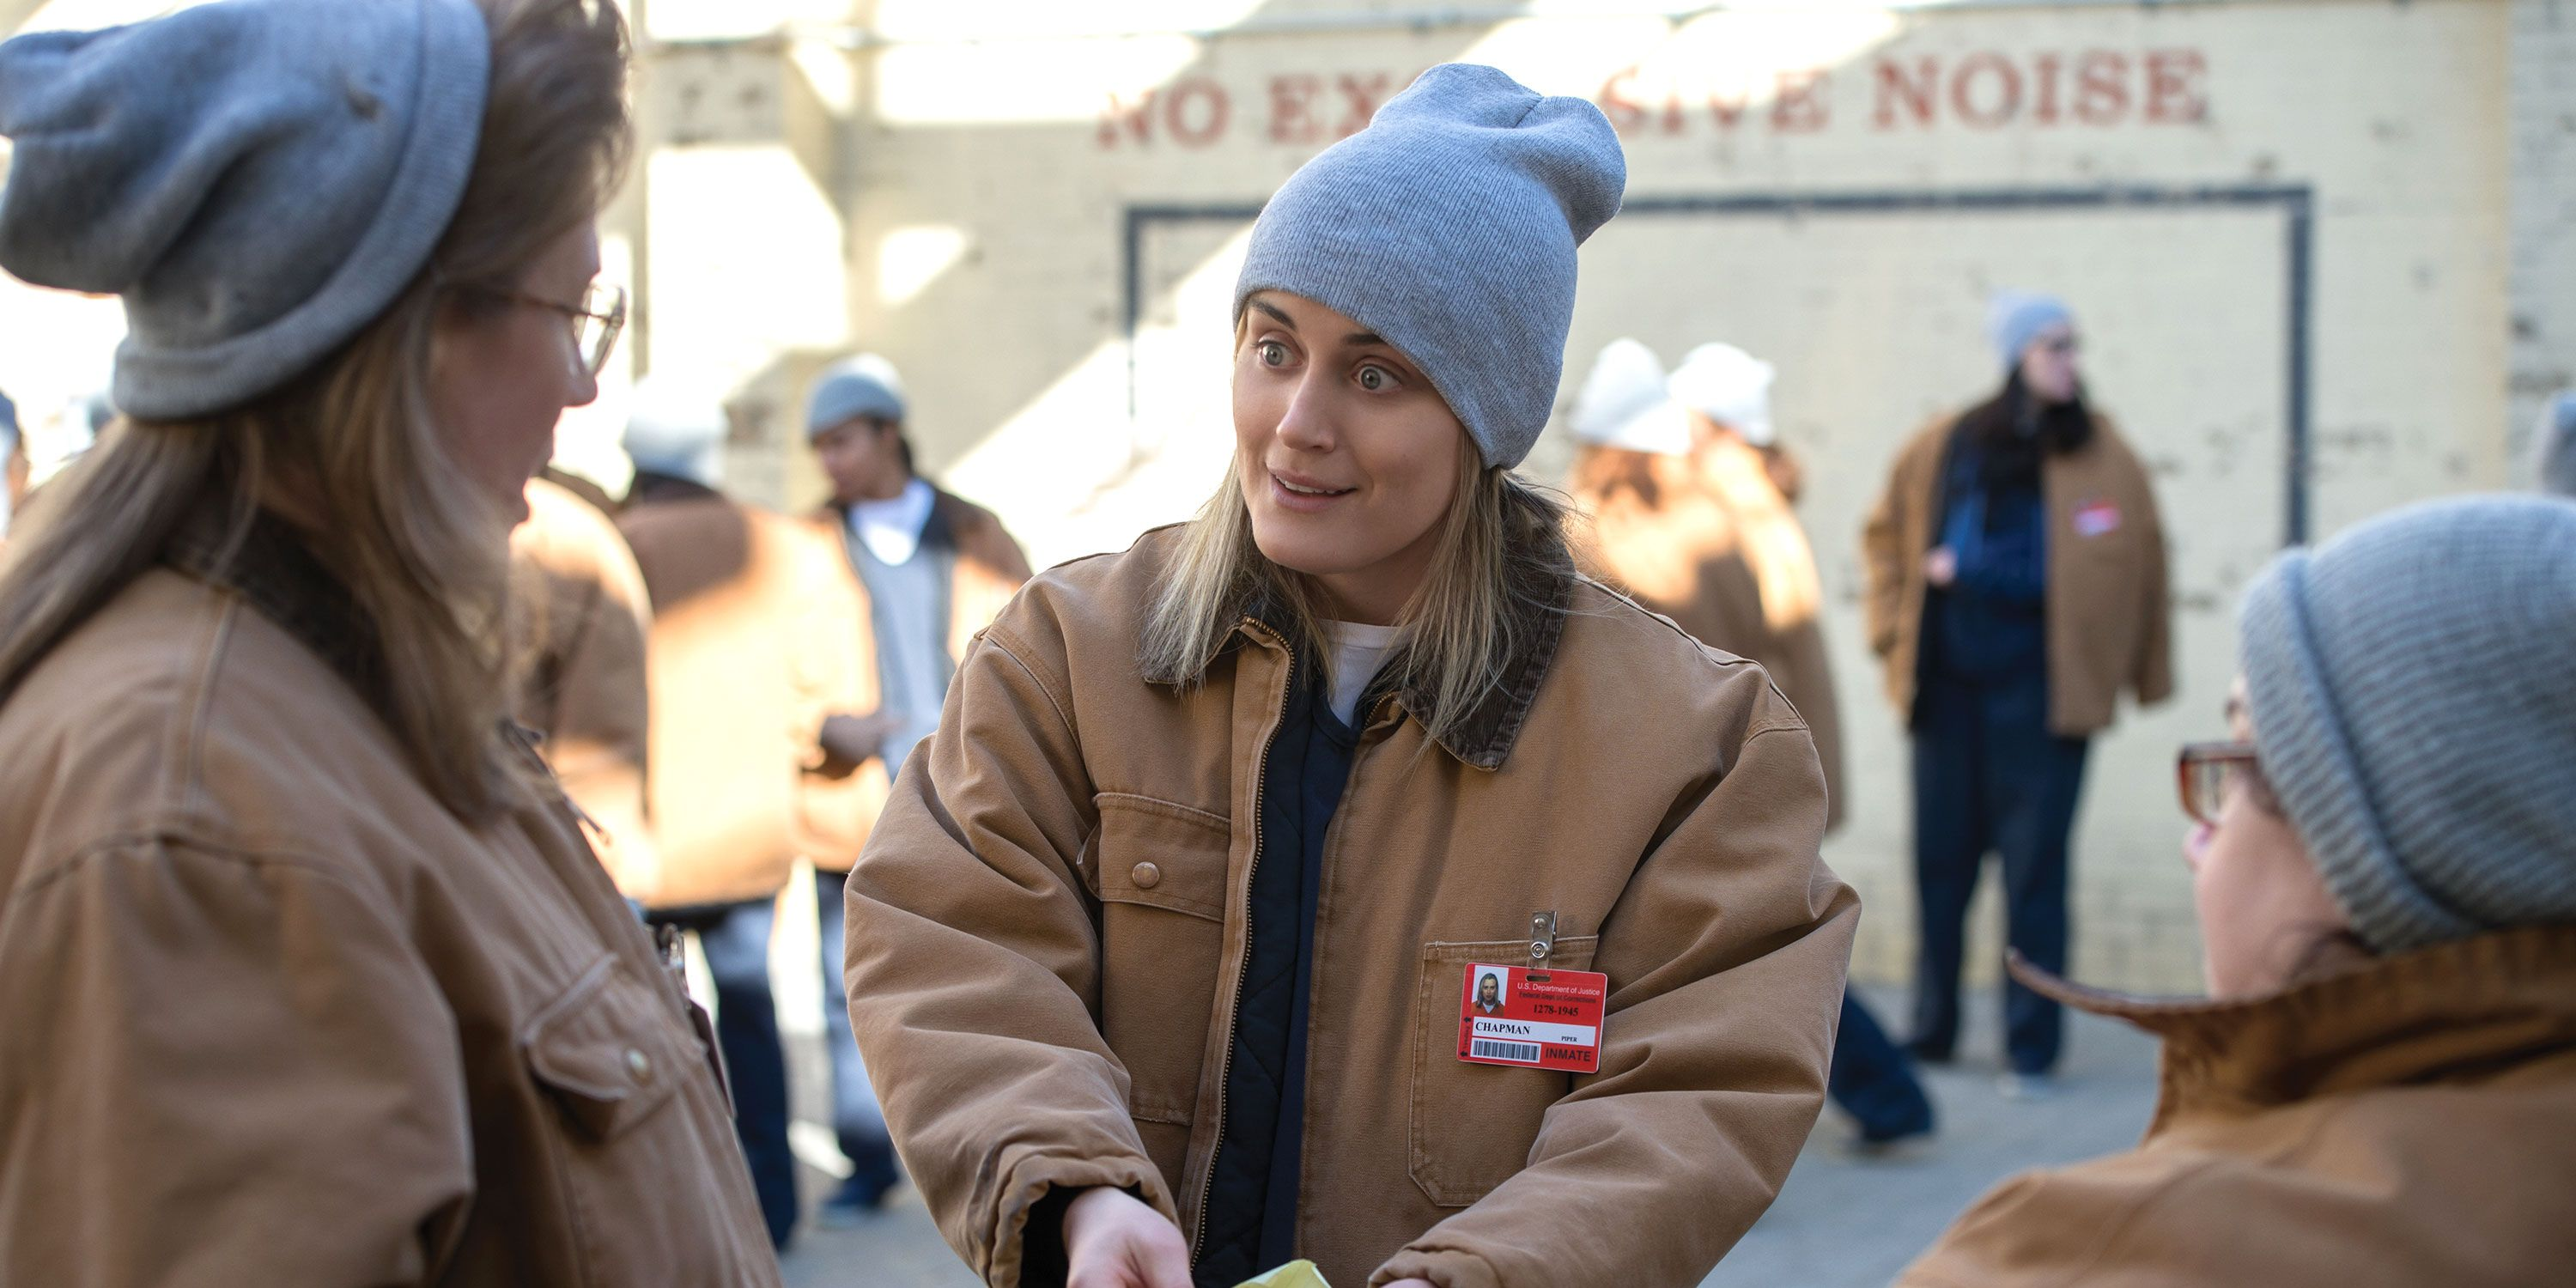 Taylor Schilling as Piper Chapman, Orange is the New Black, OITNB, season 6